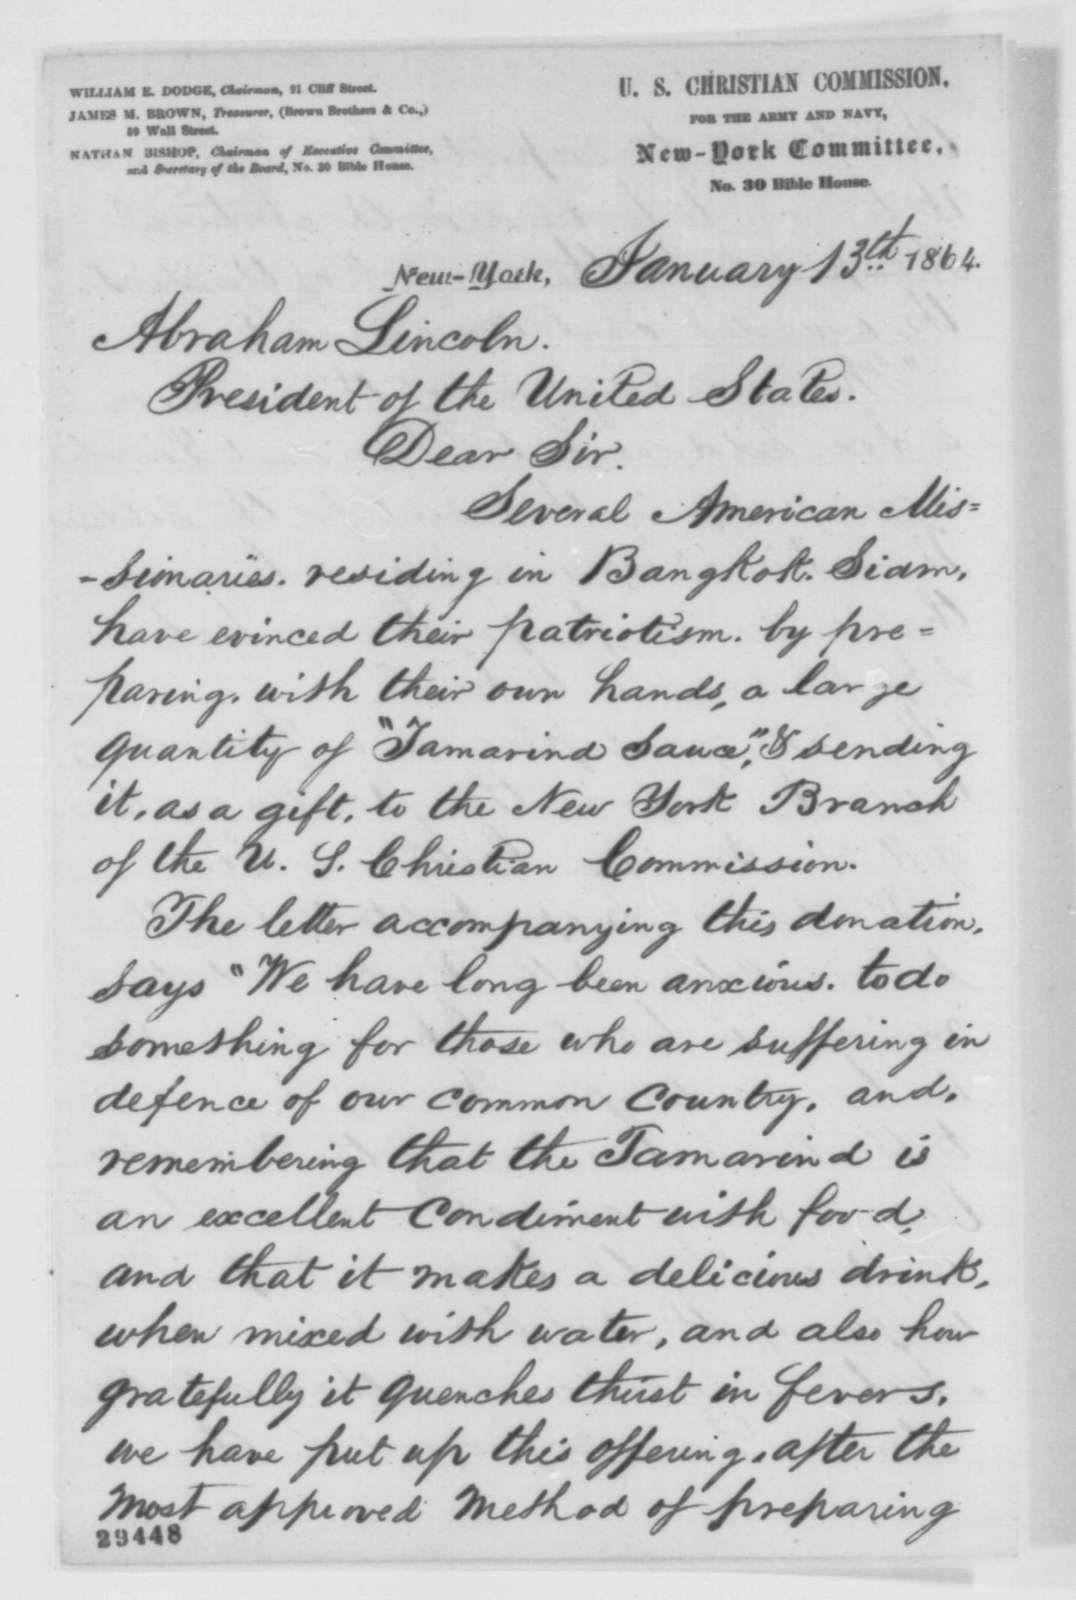 Nathan Bishop to Abraham Lincoln, Wednesday, January 13, 1864  (Sends tamarind sauce from Siam)